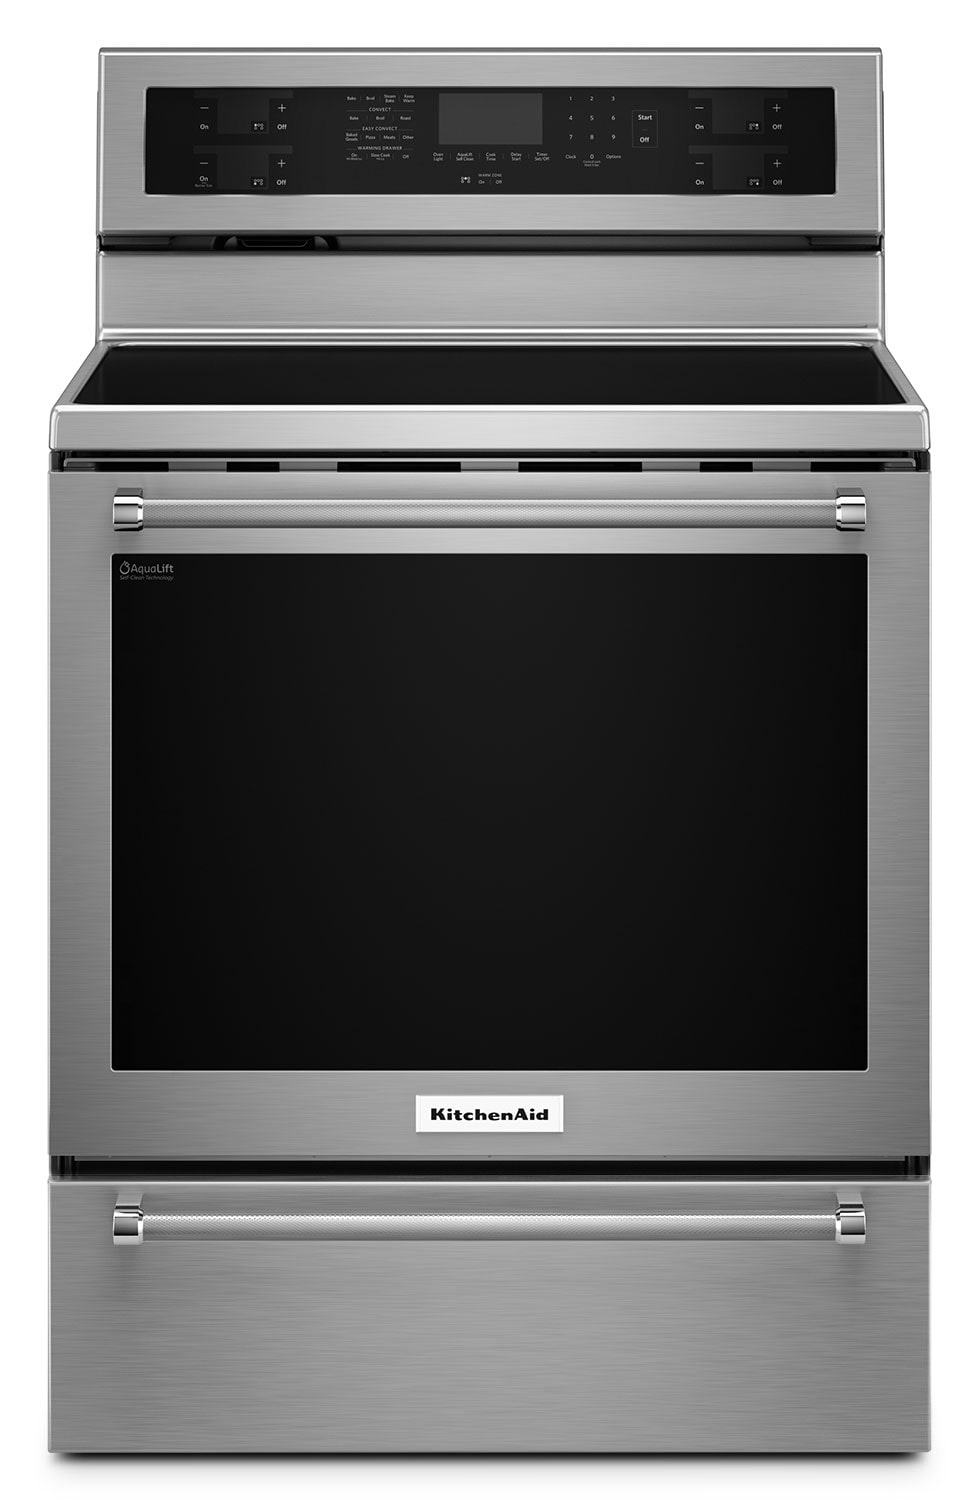 Cooking Products - KitchenAid Stainless Steel Freestanding Electric Convection Range (6.4 Cu. Ft.) - YKFES530ESS